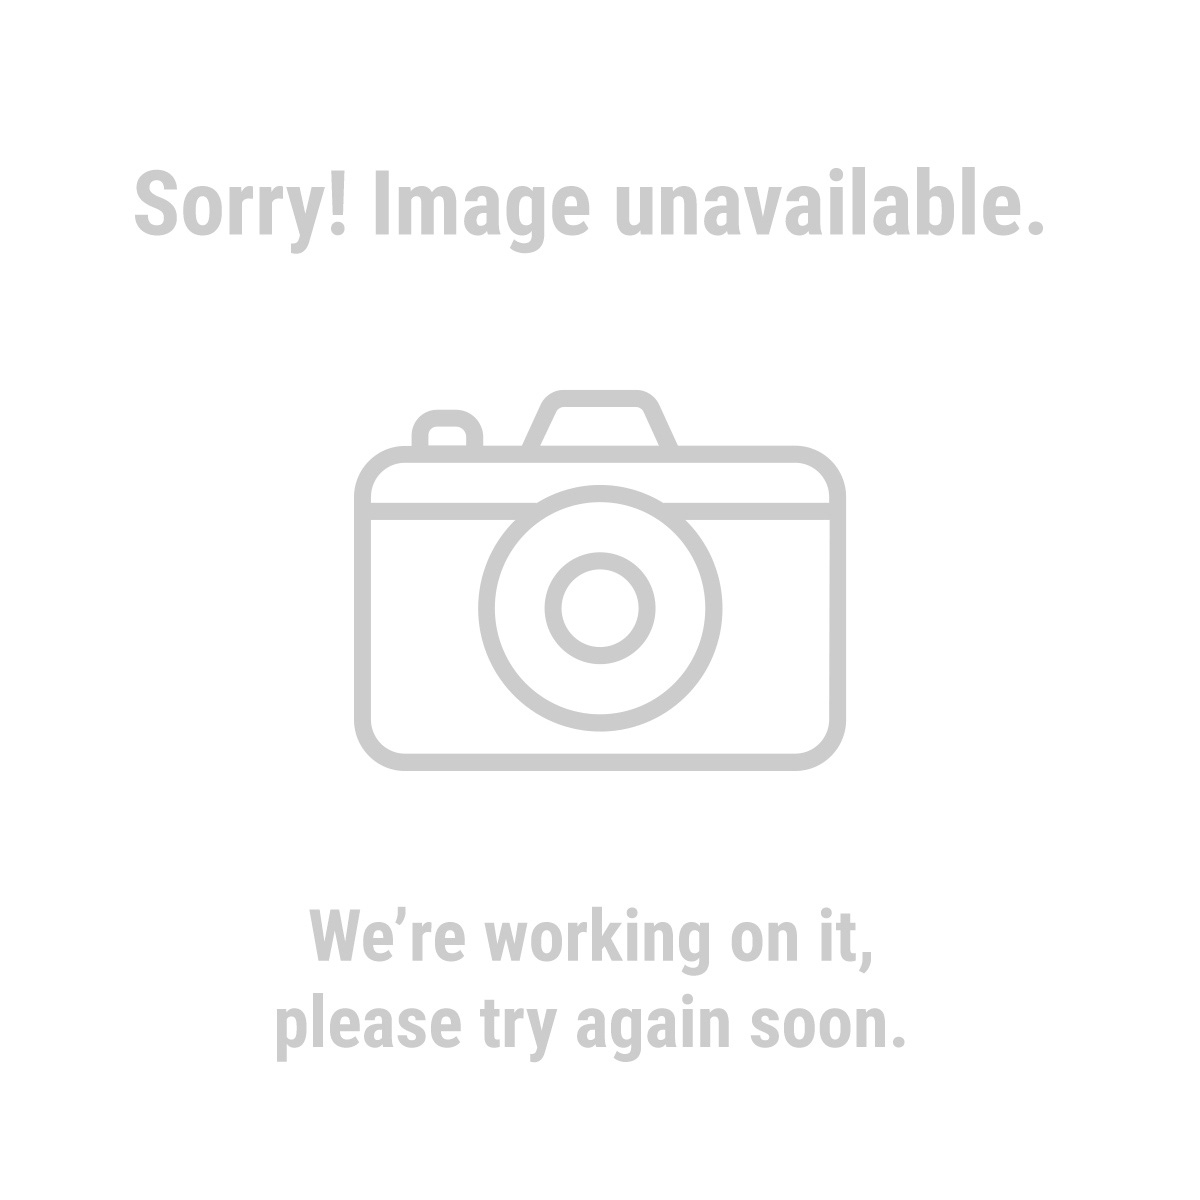 Cen-Tech 60666 4-in-1 Jump Starter with Air Compressor